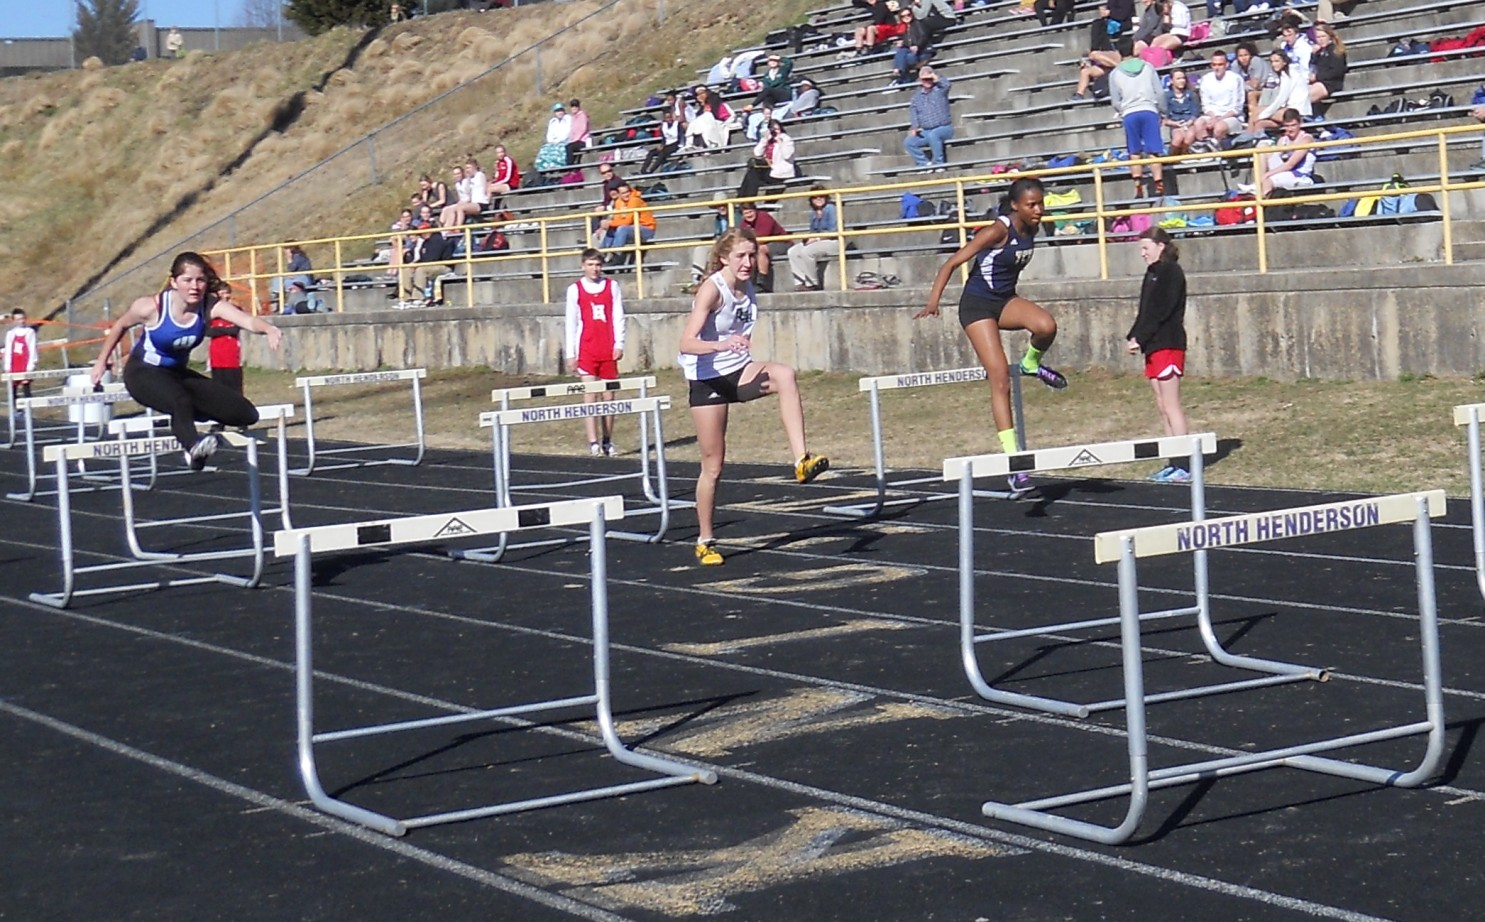 Hurdle Shuttle Relay Teams Basic Rules For Race 2014 Ac Reynolds Team Christen Ray Anu Frempong Mariah Richardson Kourtnai Coles Whkp Relays Champions Meet Record 10707